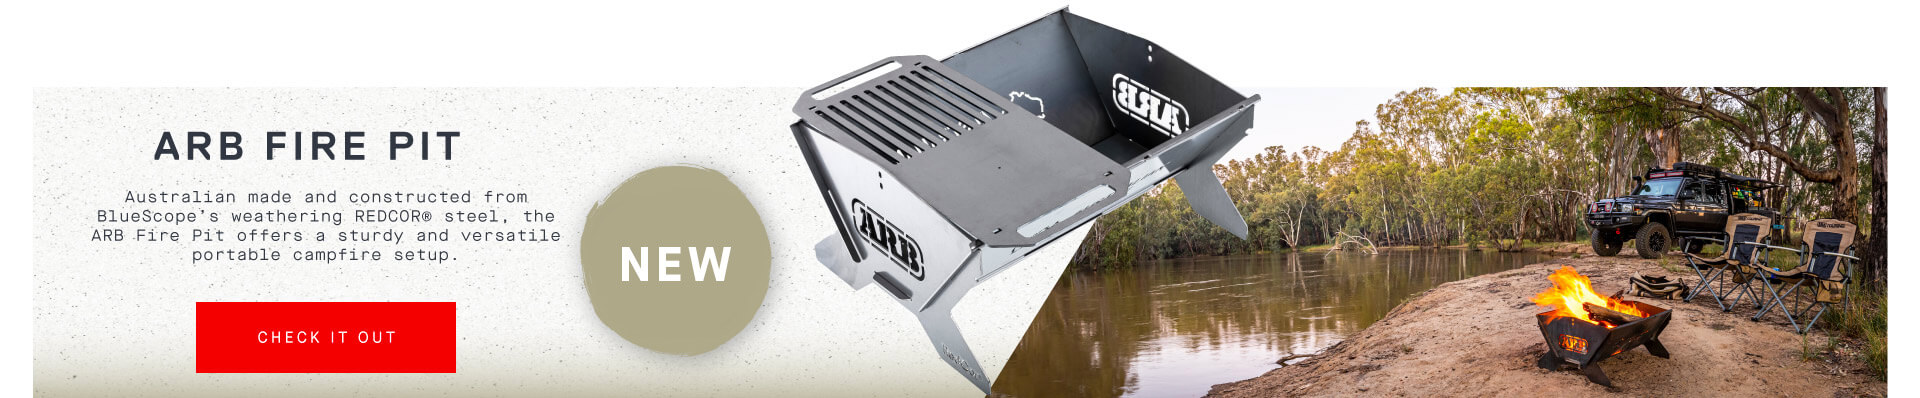 ARB Fire Pit - new release